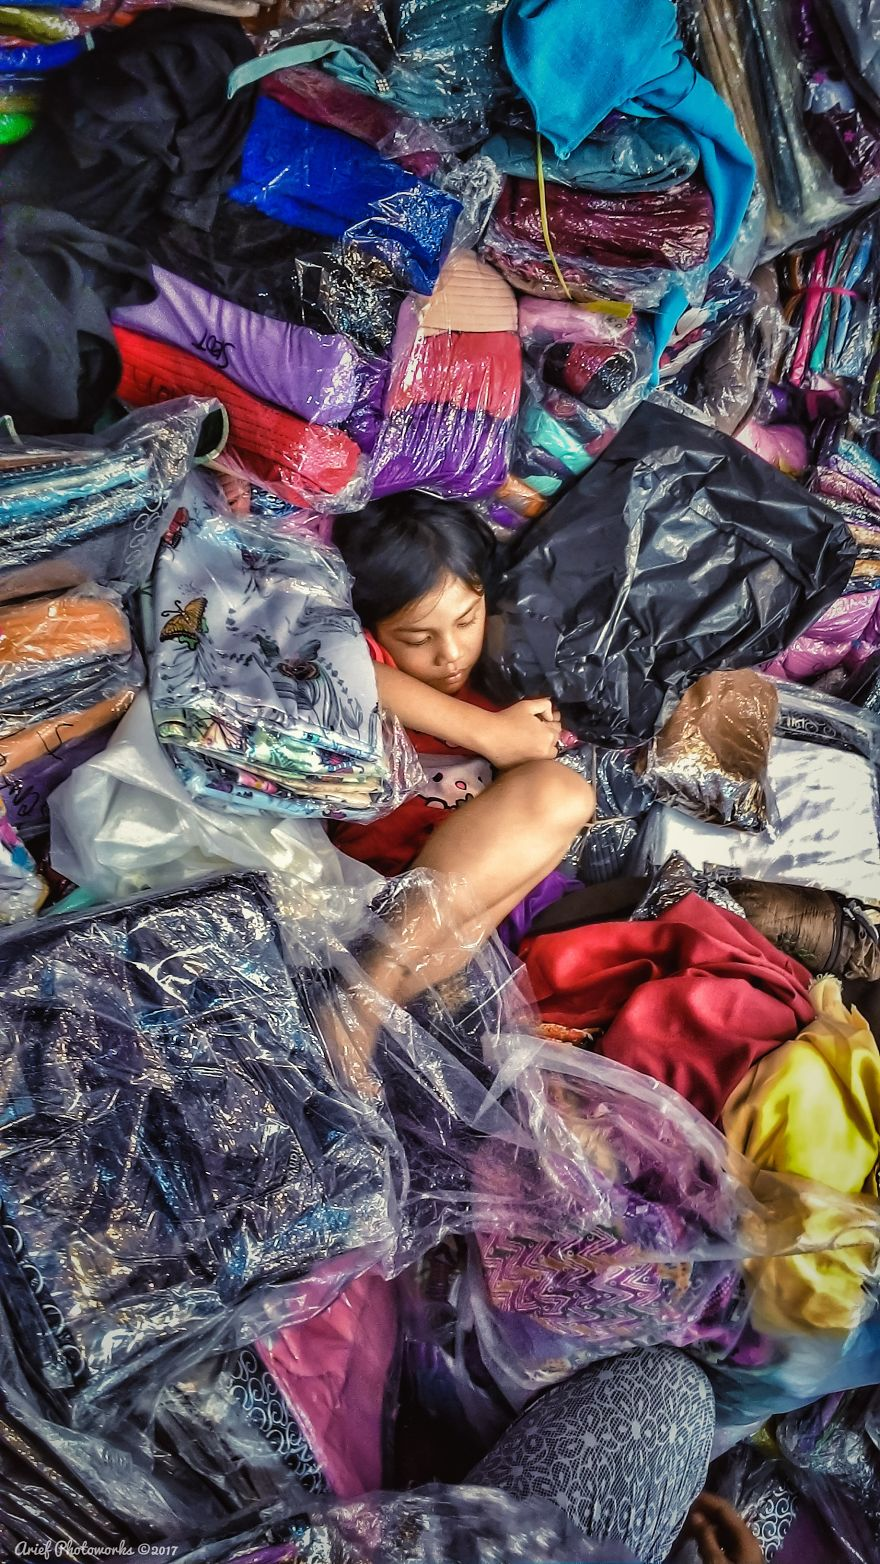 Child Playing In Her Parents' Merchandise